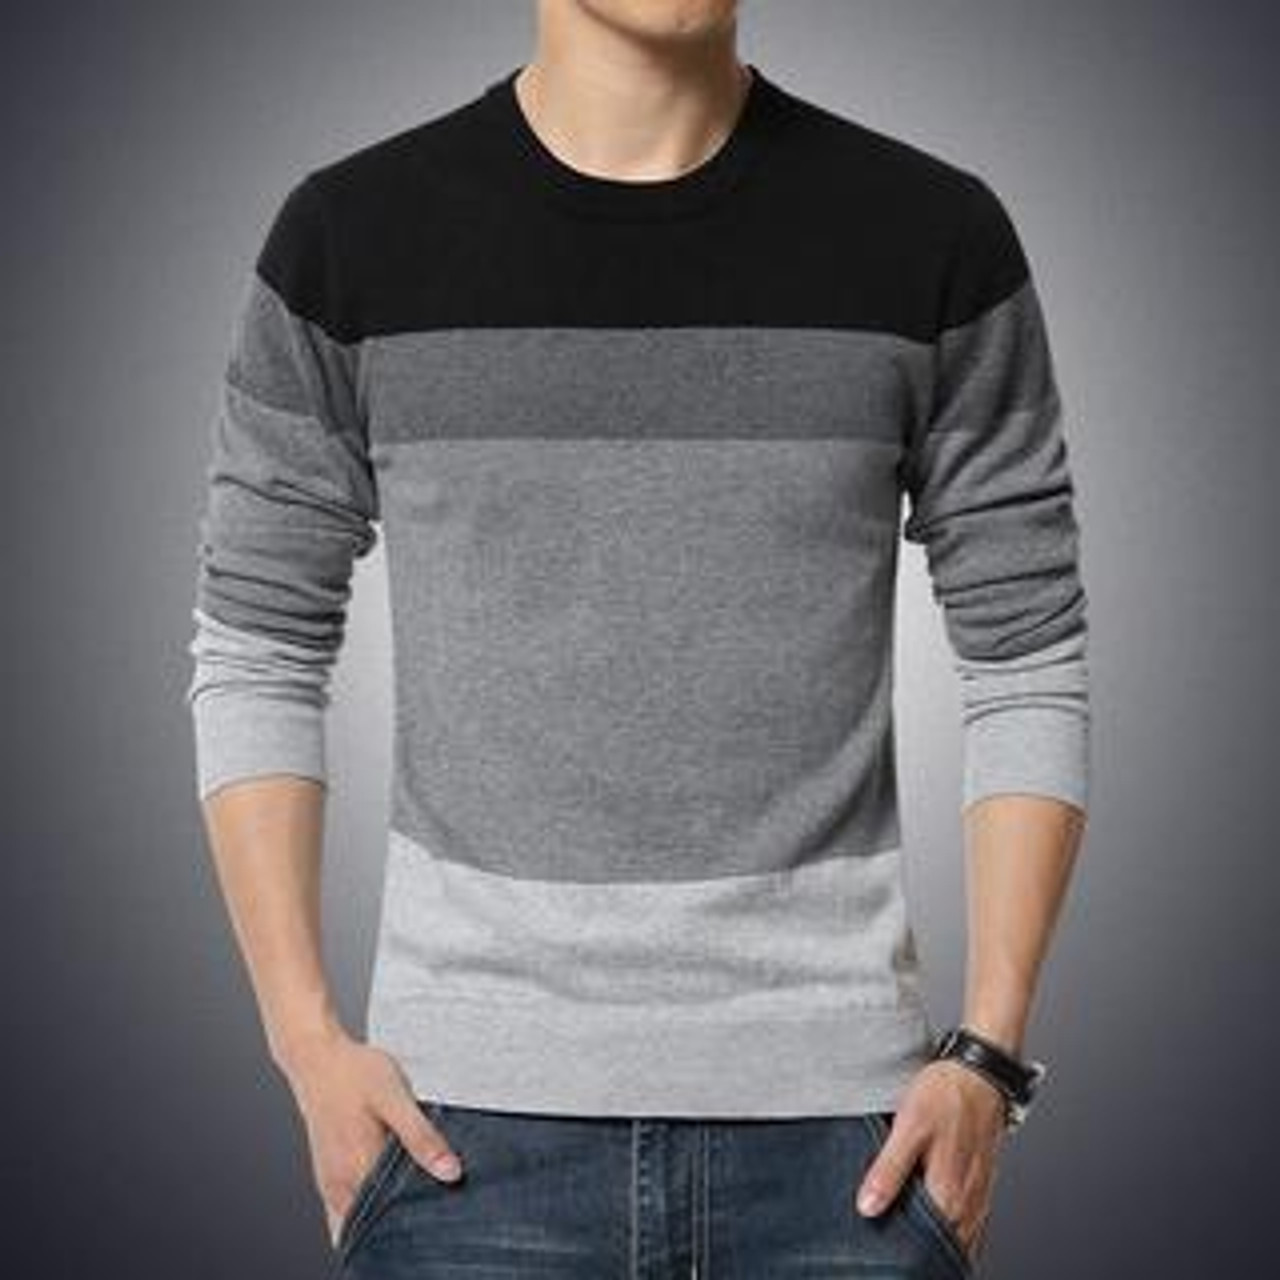 Mens Tops & Jumpers & Cardigan